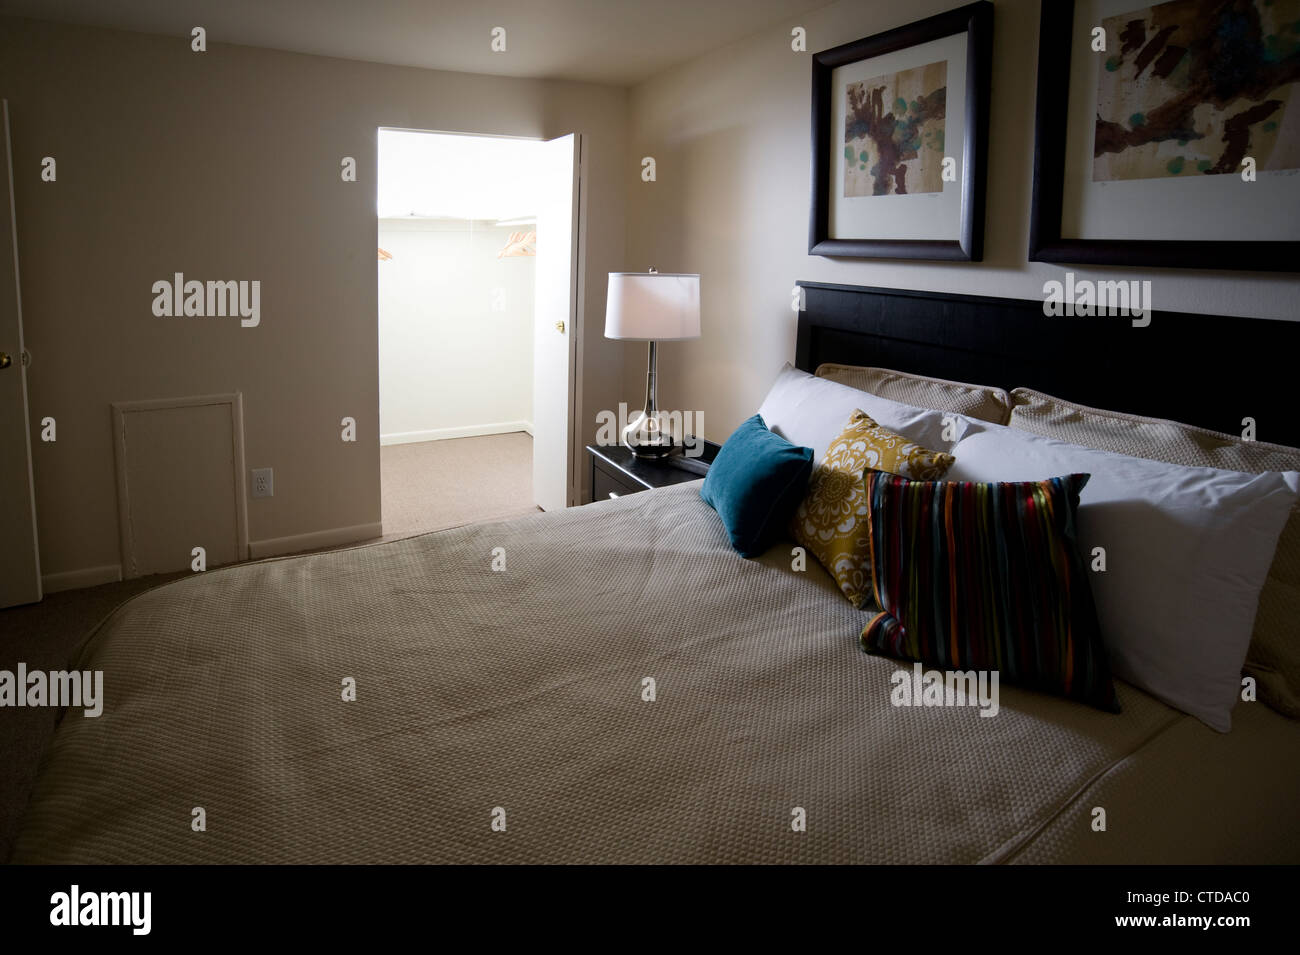 Bed In Bedroom With Bright Light Coming From Closet At Night - Stock Image